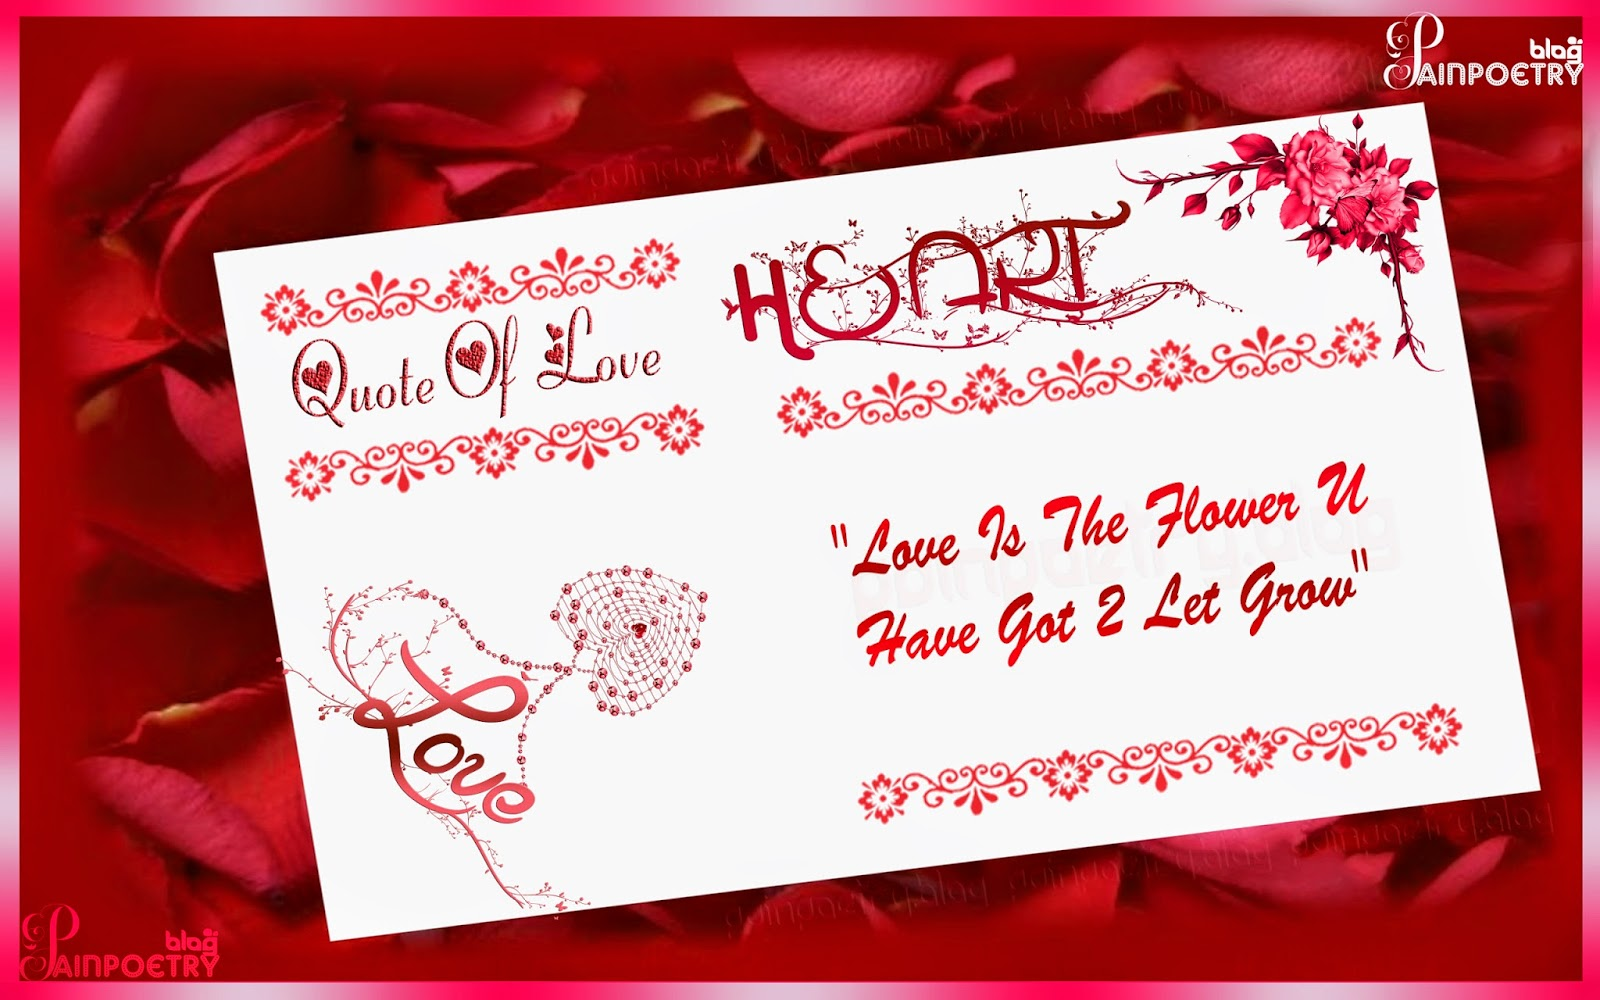 Love-Greeting-Quote-Love-Photo-Love-Image-For-Lover-Cute-Quote-Wide